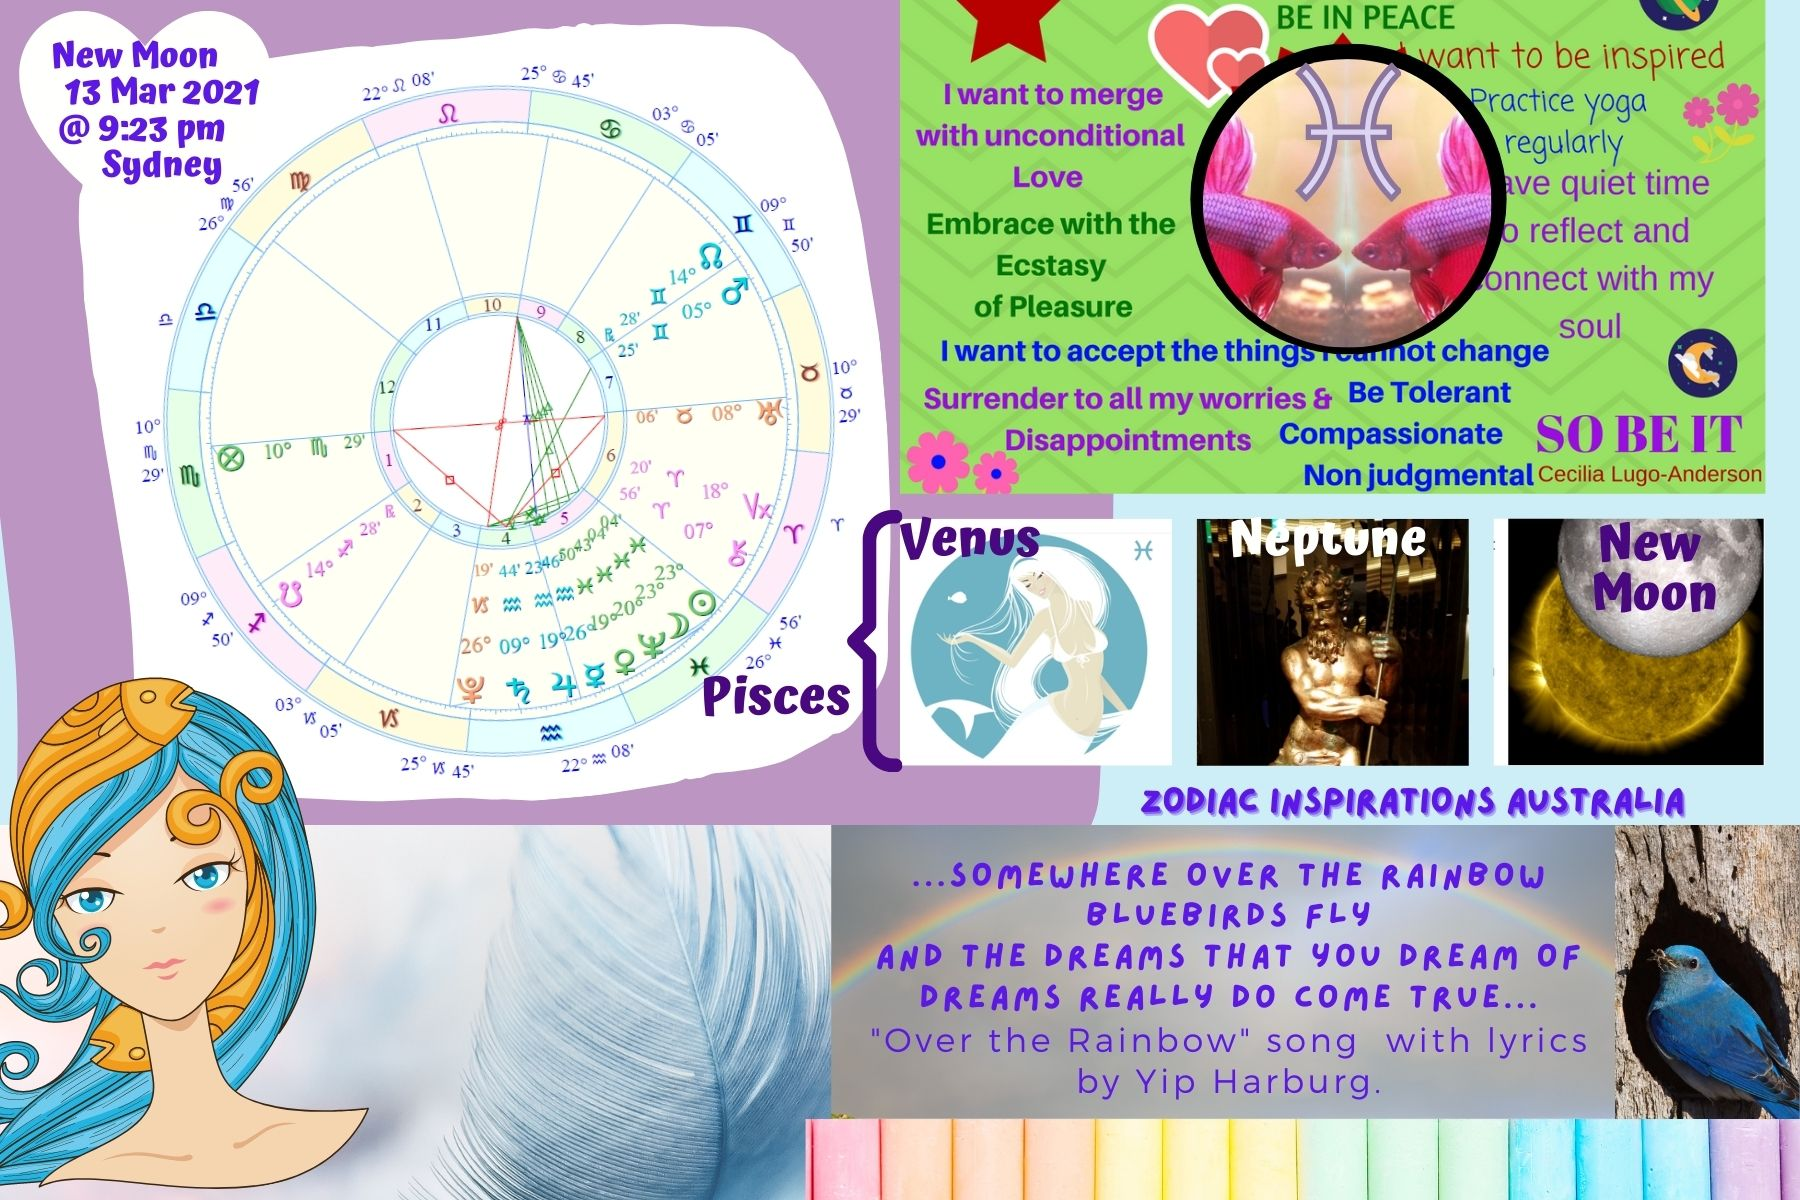 Pisces New Moon - 23 March 2021